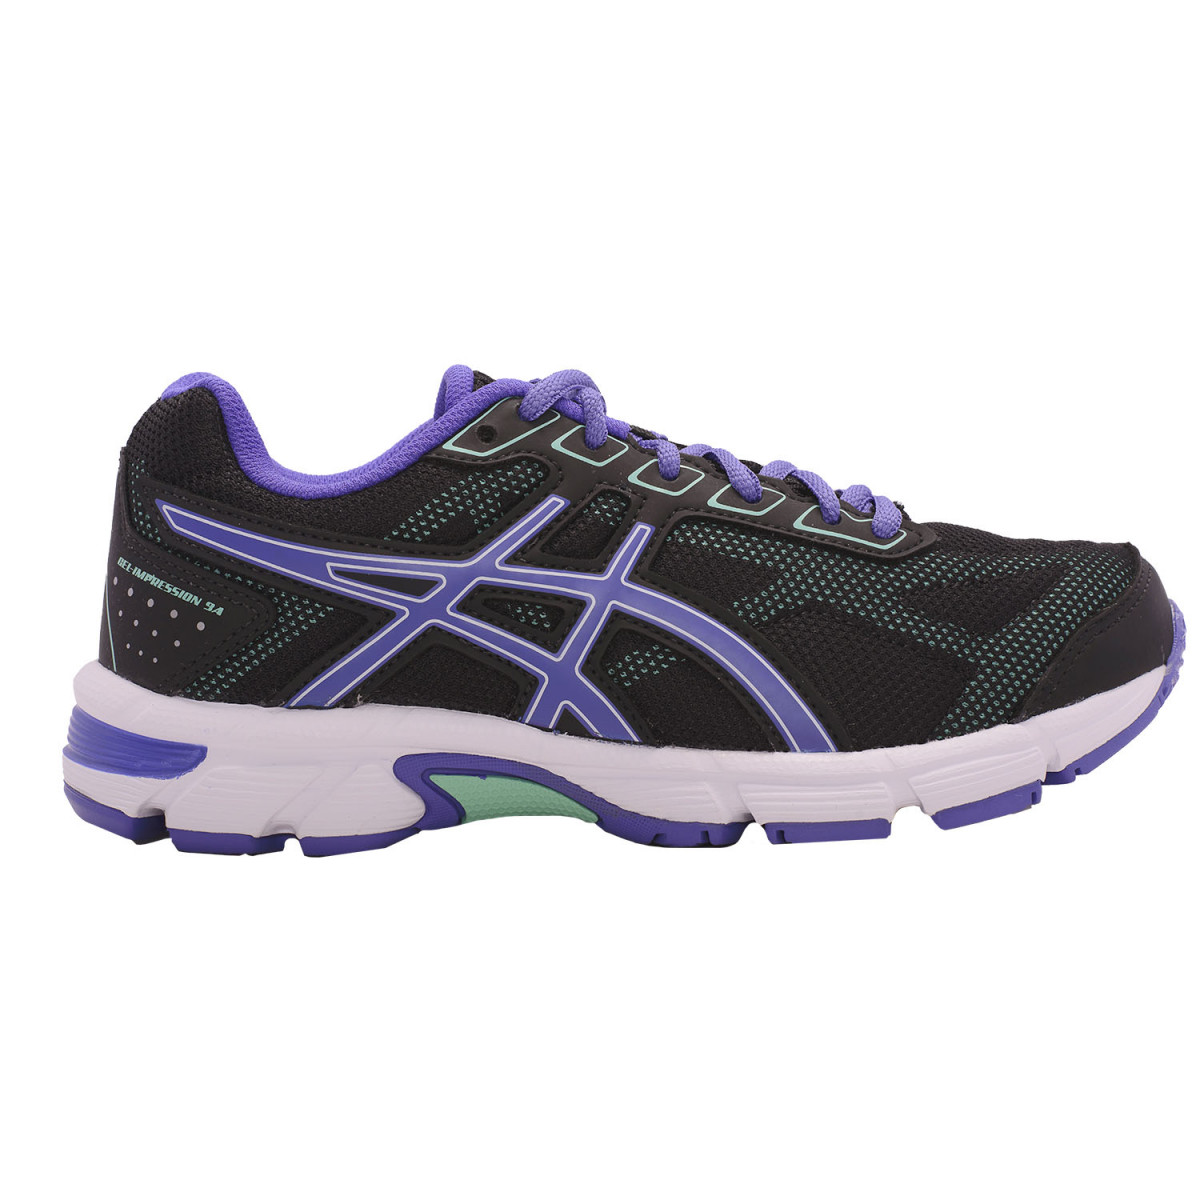 78d14bb8a4764 Zapatillas Asics Gel-Impression 9 A - Asics hasta 35% OFF - Rebajas